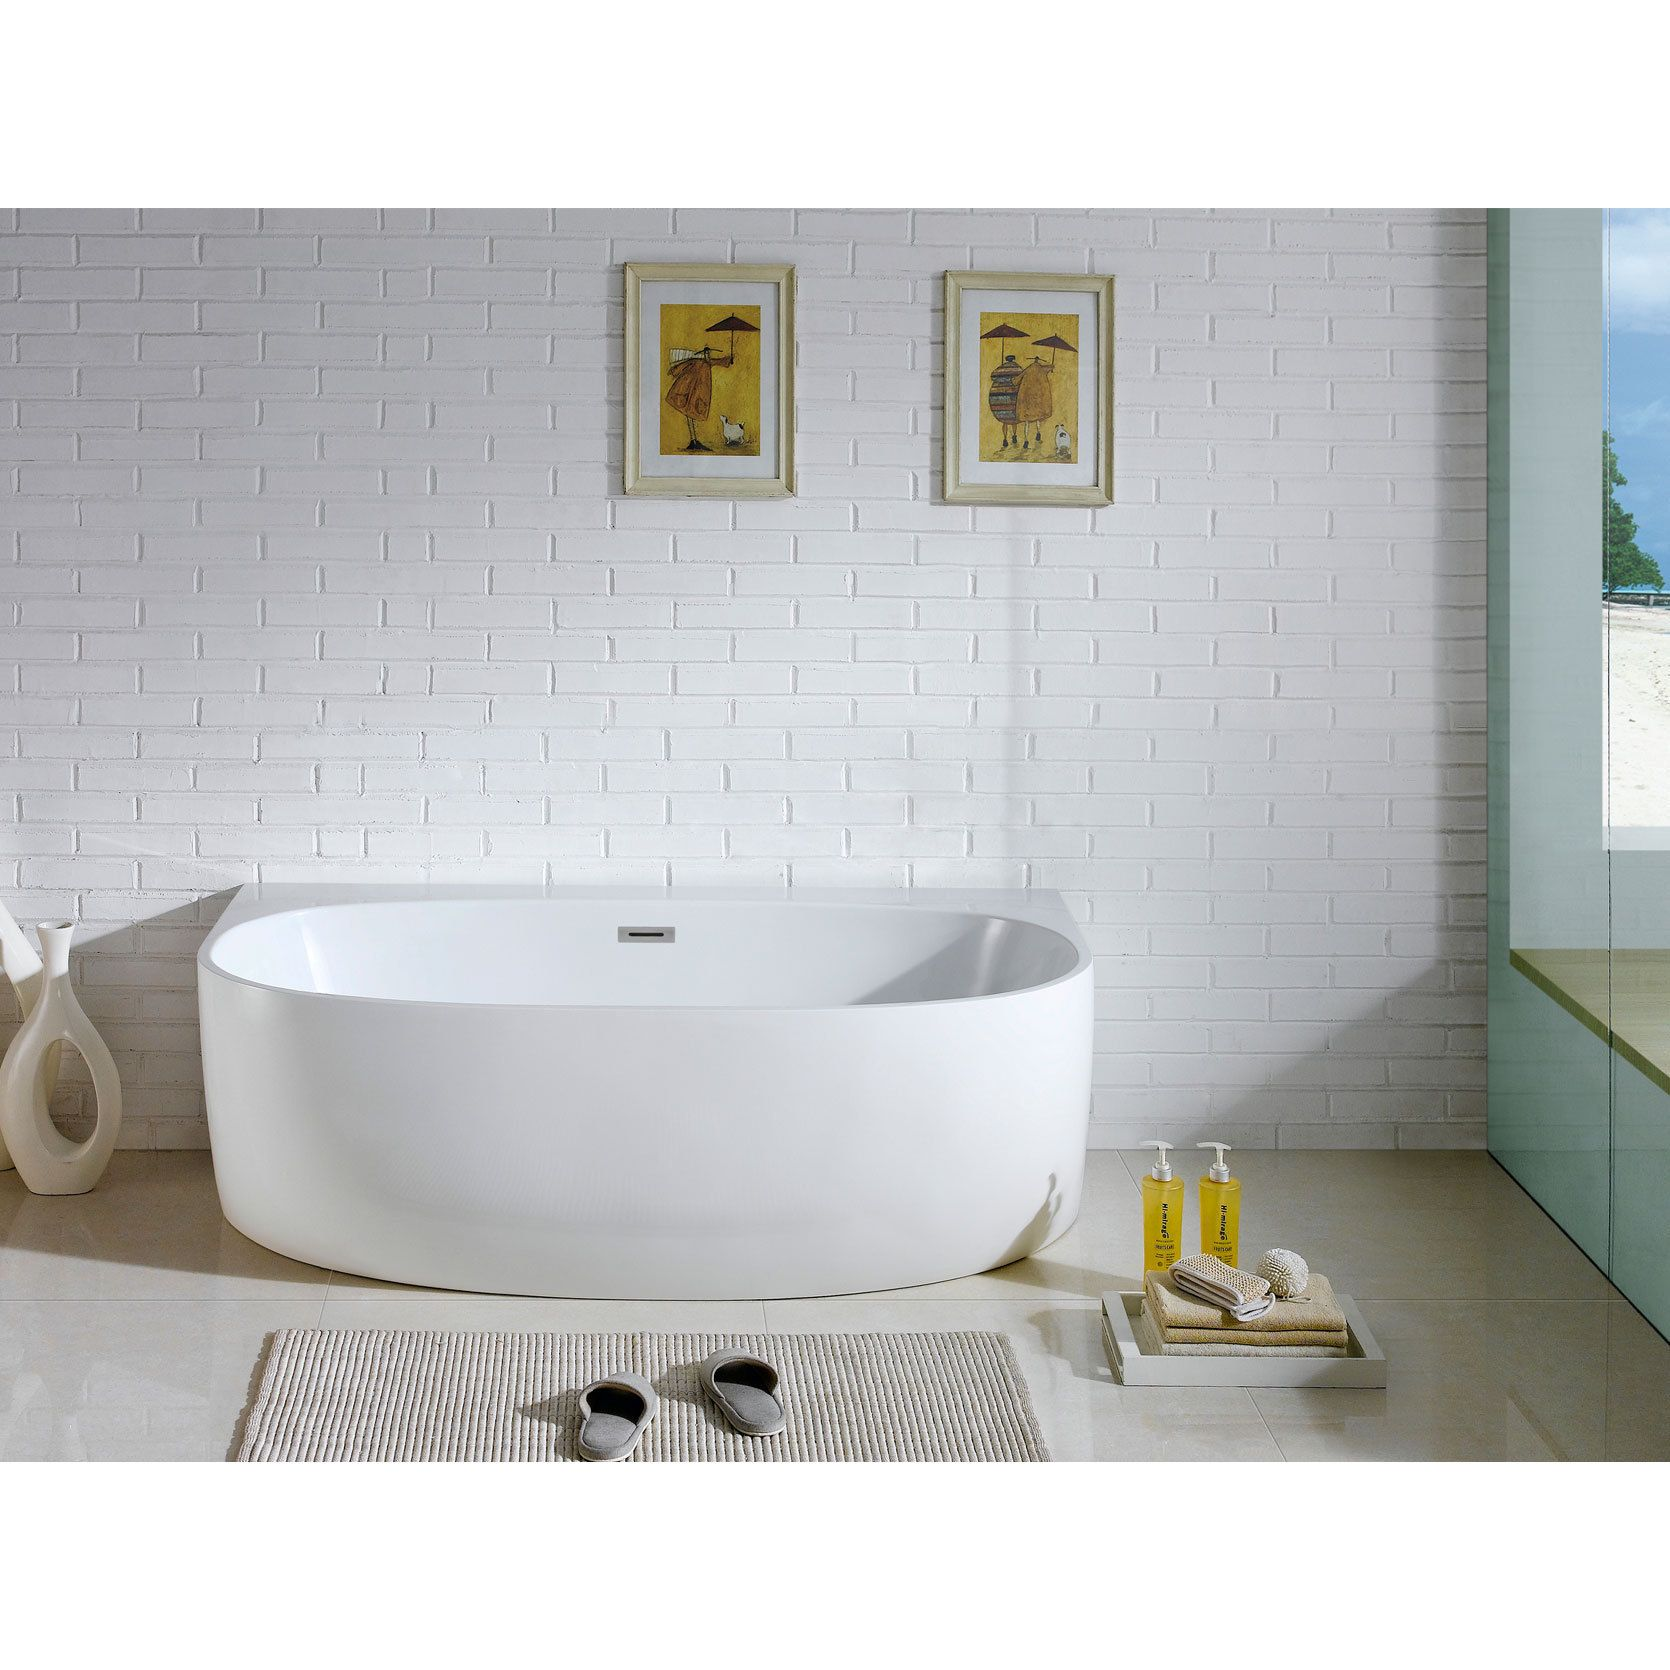 Pacific Collection Monte 58-inch x 33-inch White Oval Soaking ...